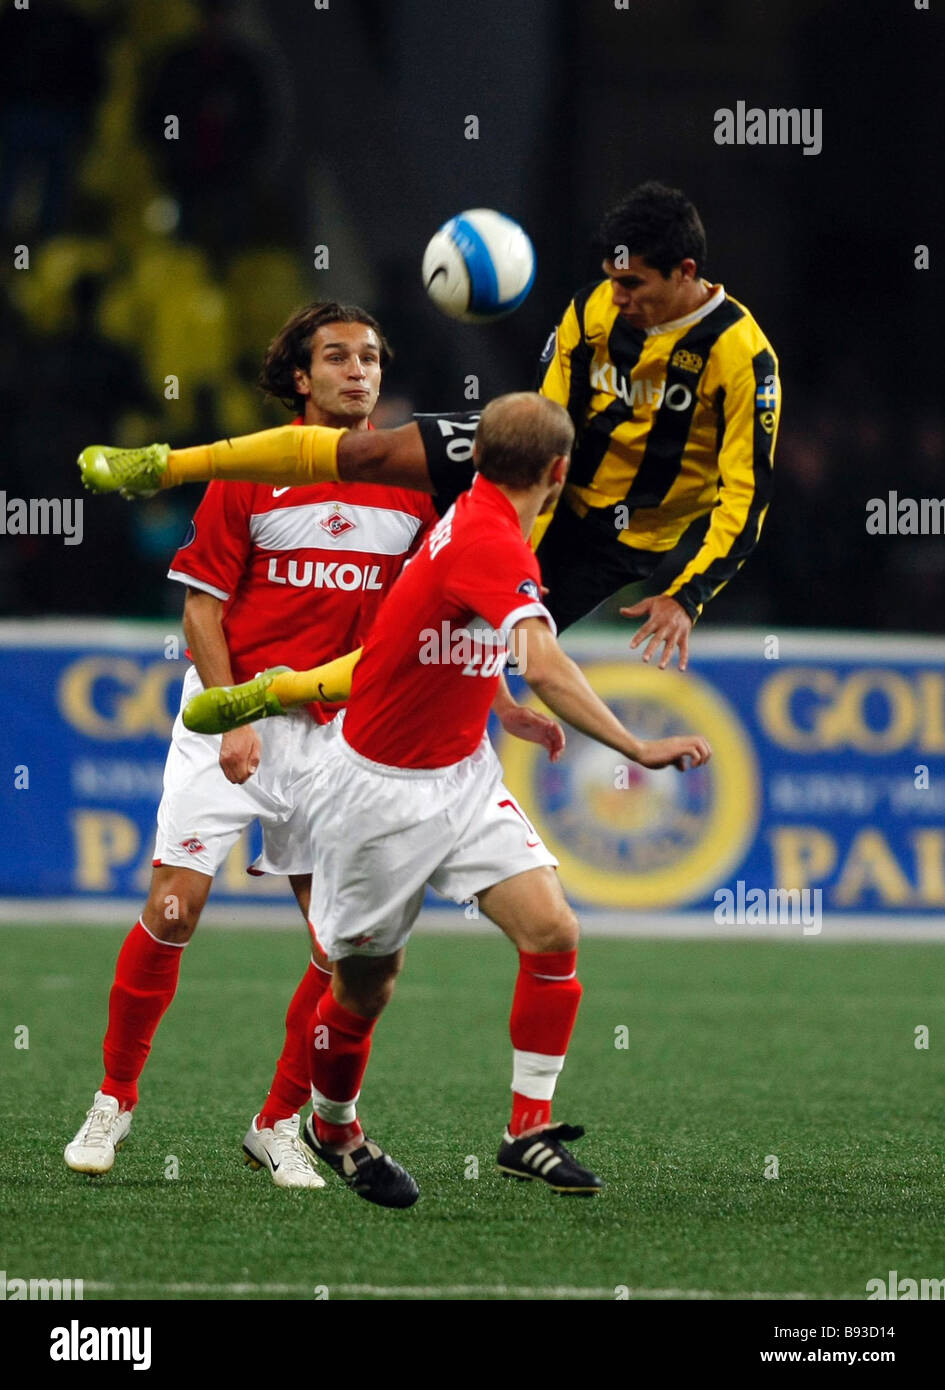 Paolo Jose Olivera leaping of Haecken Sweden football club and Denis Boyarintsev foreground and Renat Sabitov background - Stock Image